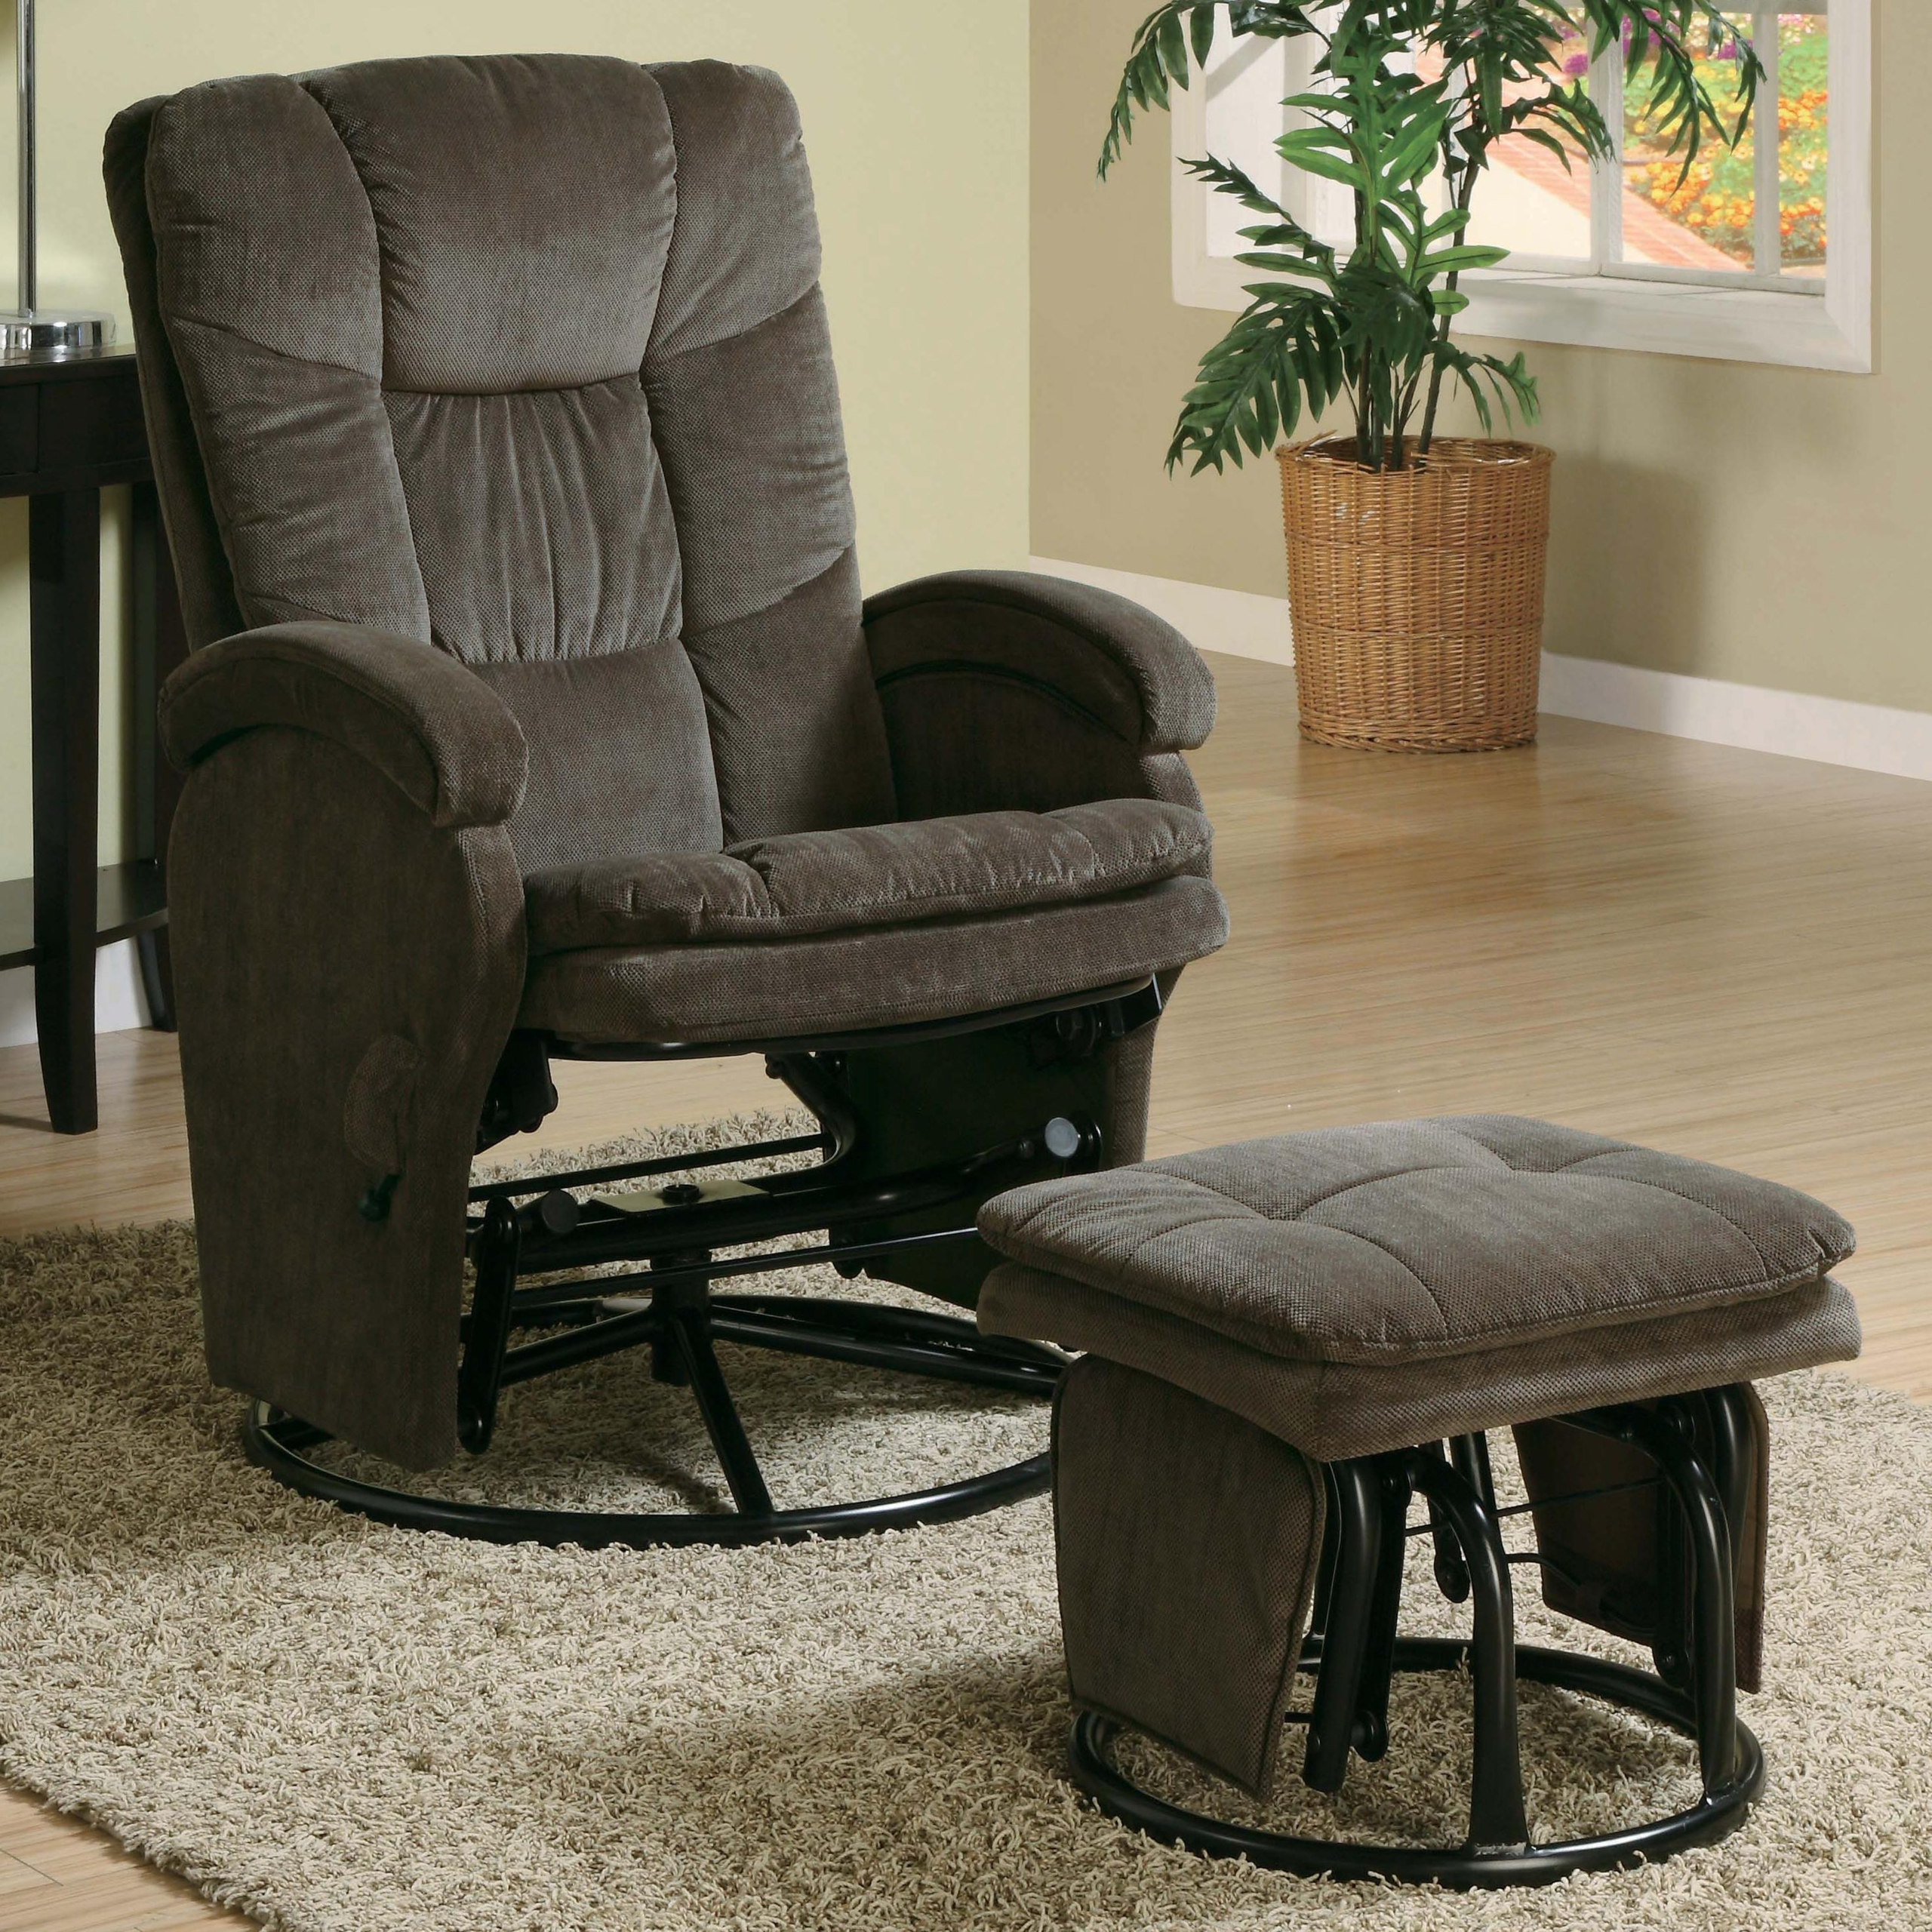 Incroyable 600159 2PC Modern Swivel Gliding, Rocking Recliner Chair With Metal Ottoman  In Choco.